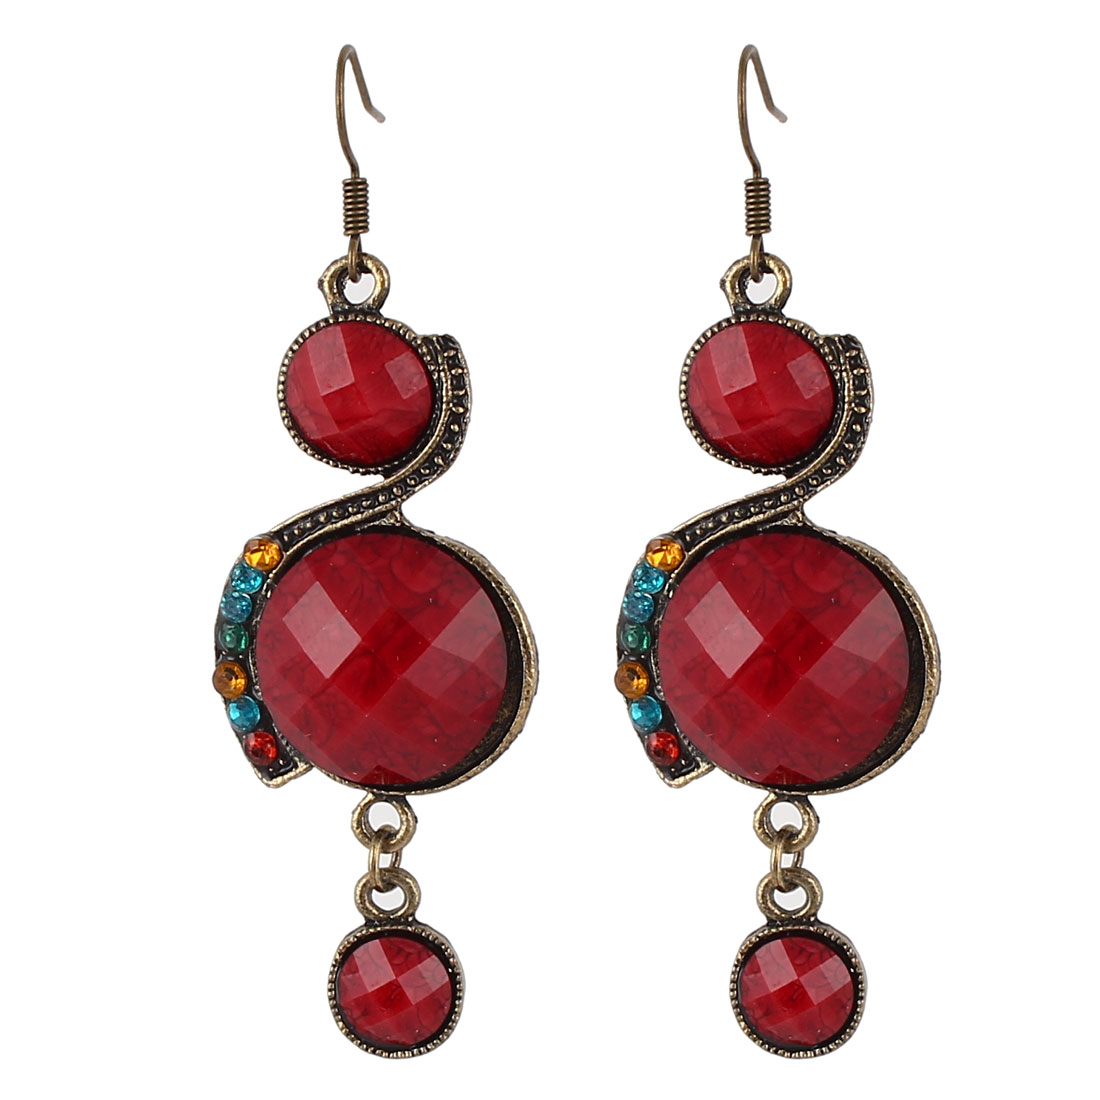 Pair Red Round Faced Rhinestone Decor 8 Shaped Bronze Tone Frame Hook Earrings